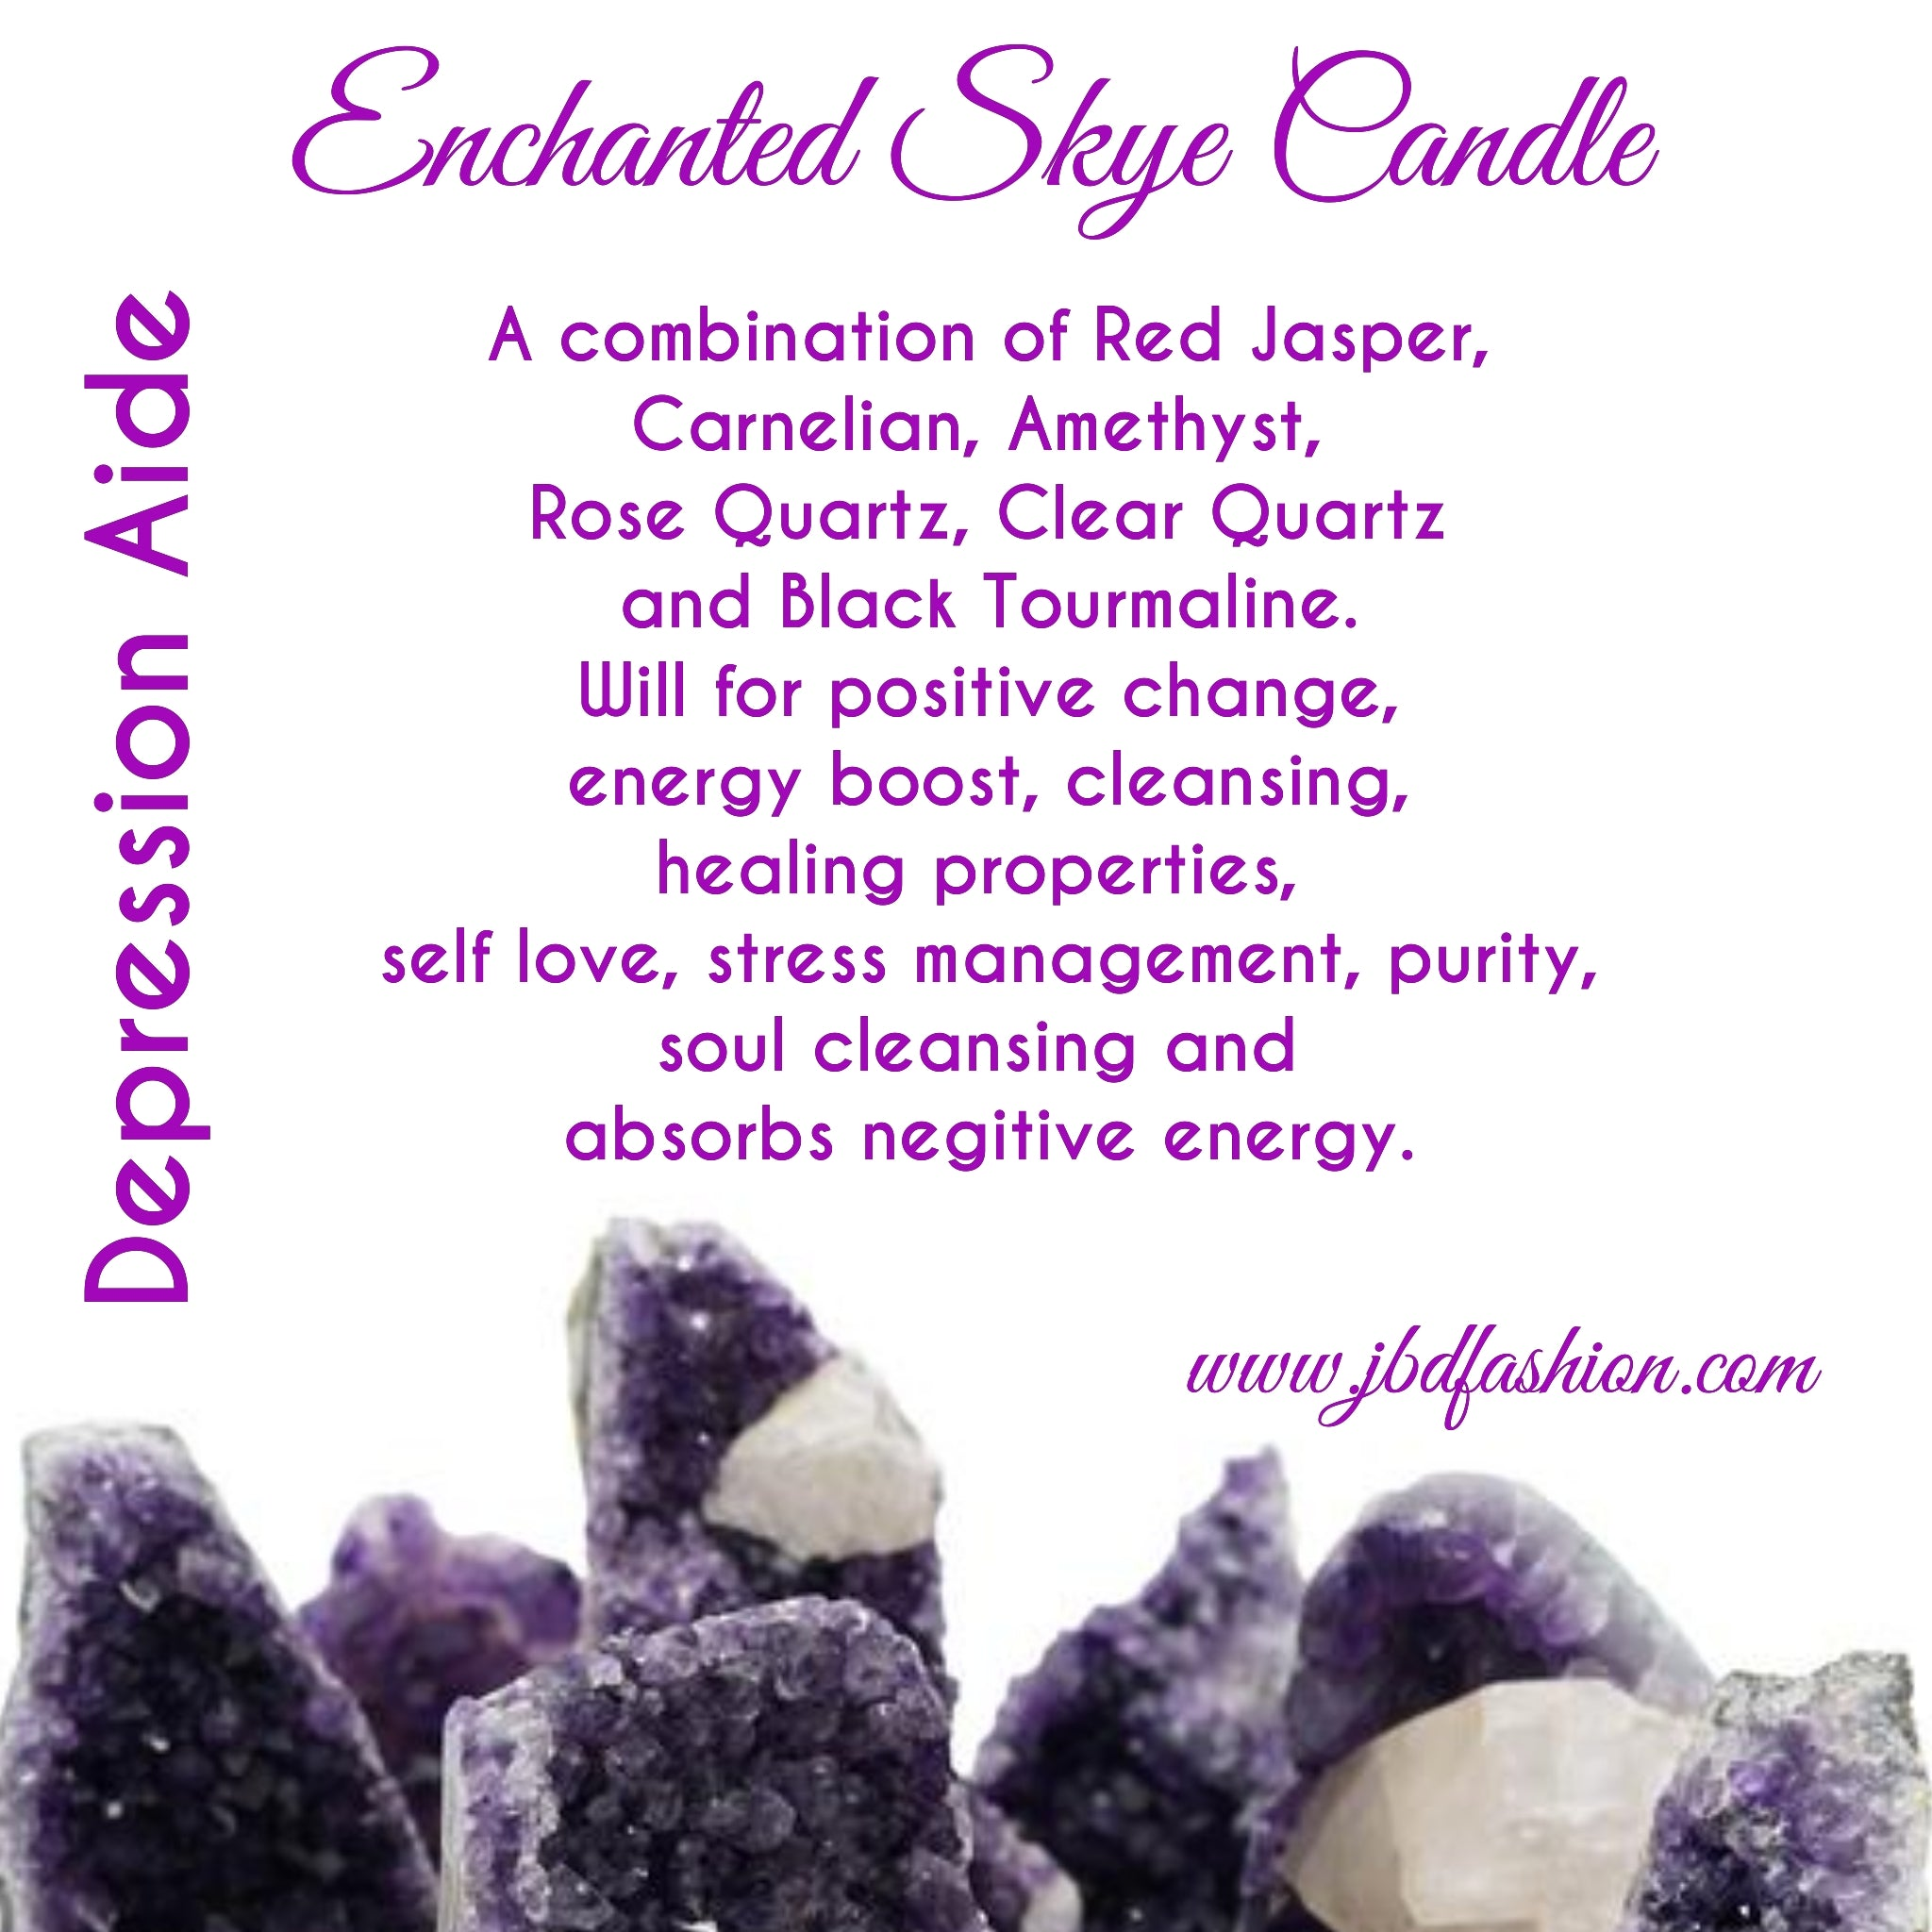 Enchanted Skye Candle - Depression Aide - JBD